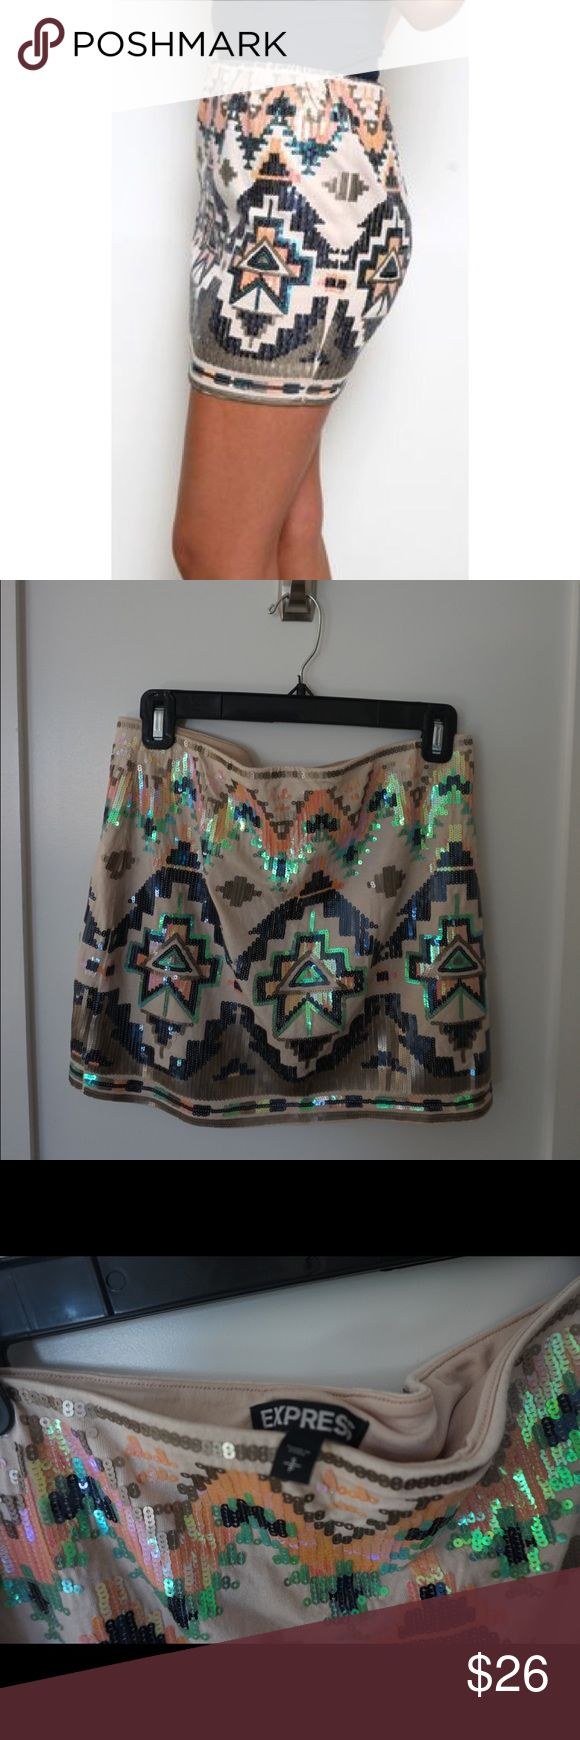 Express Aztec Sequin Skirt Super fun and cute Aztec styled skirt! Sparkles beautifully. Perfect for the club, sorority socials, and even family events! All the sequins are in place. Clean with no stretching of fabric or stains. Worn once. In great condition! Willing to price negotiate ✔️. No trades 🙅🏼. Express Skirts Mini